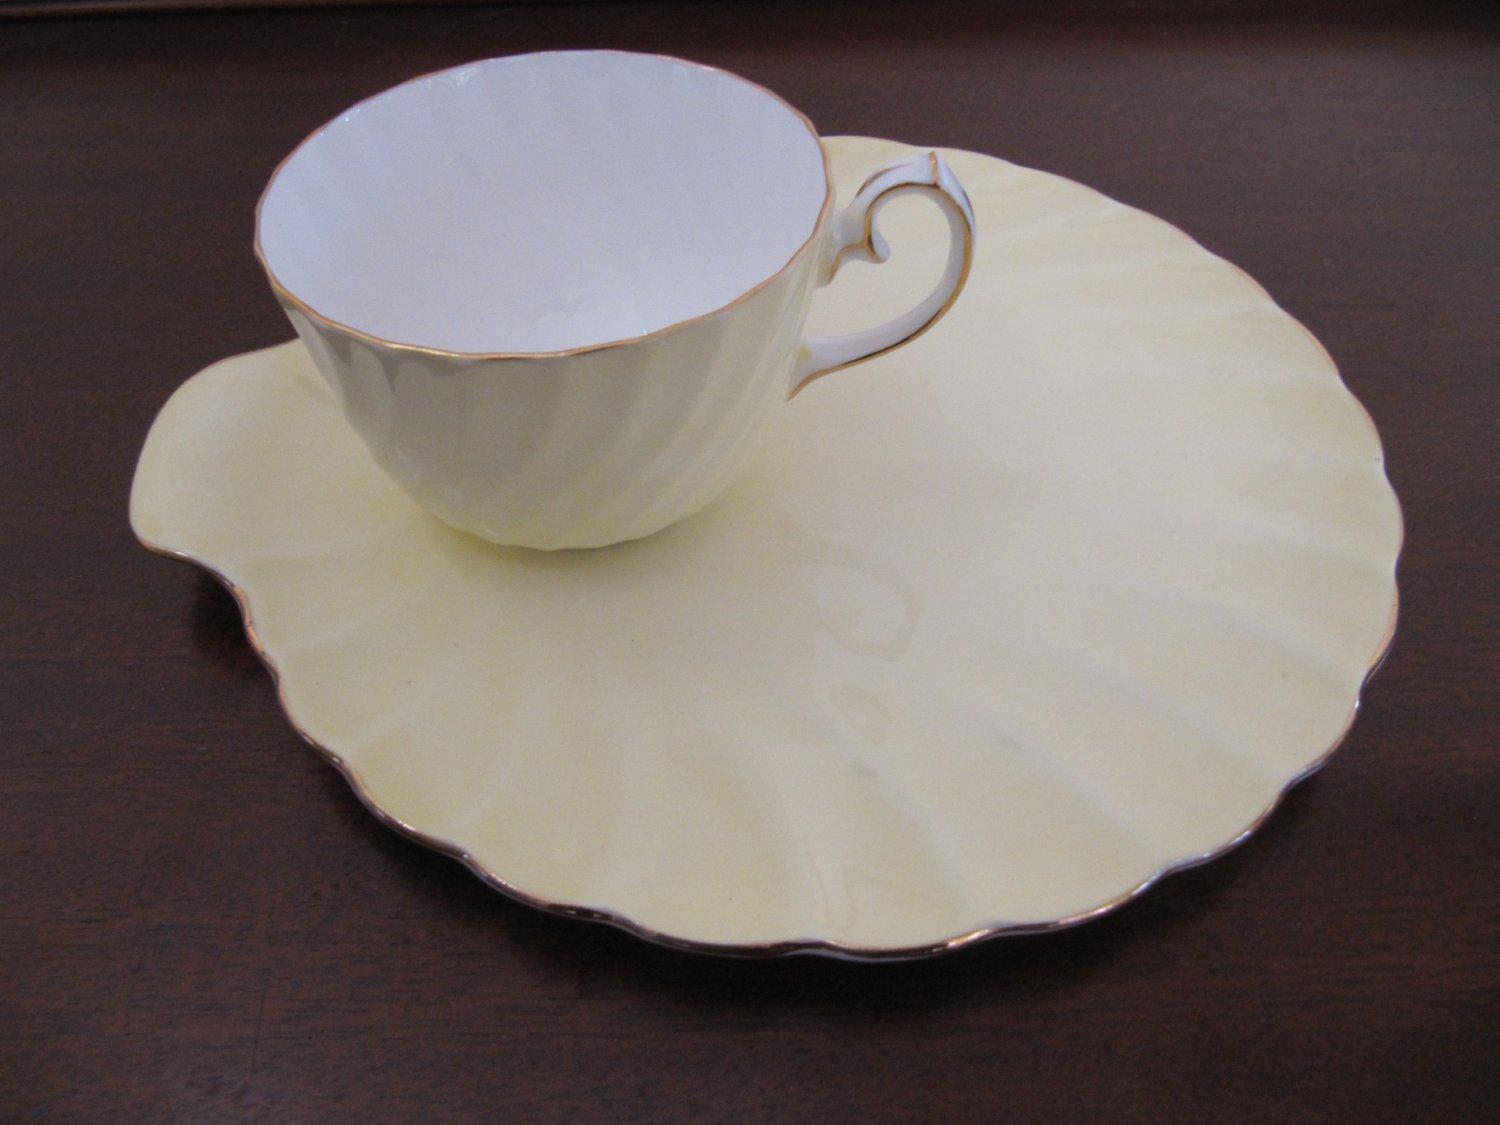 Vintage GLADSTONE Old Grecian Flute Tea & Toast Snack Plate Yellow Gilt Trim Bone China with Teacup